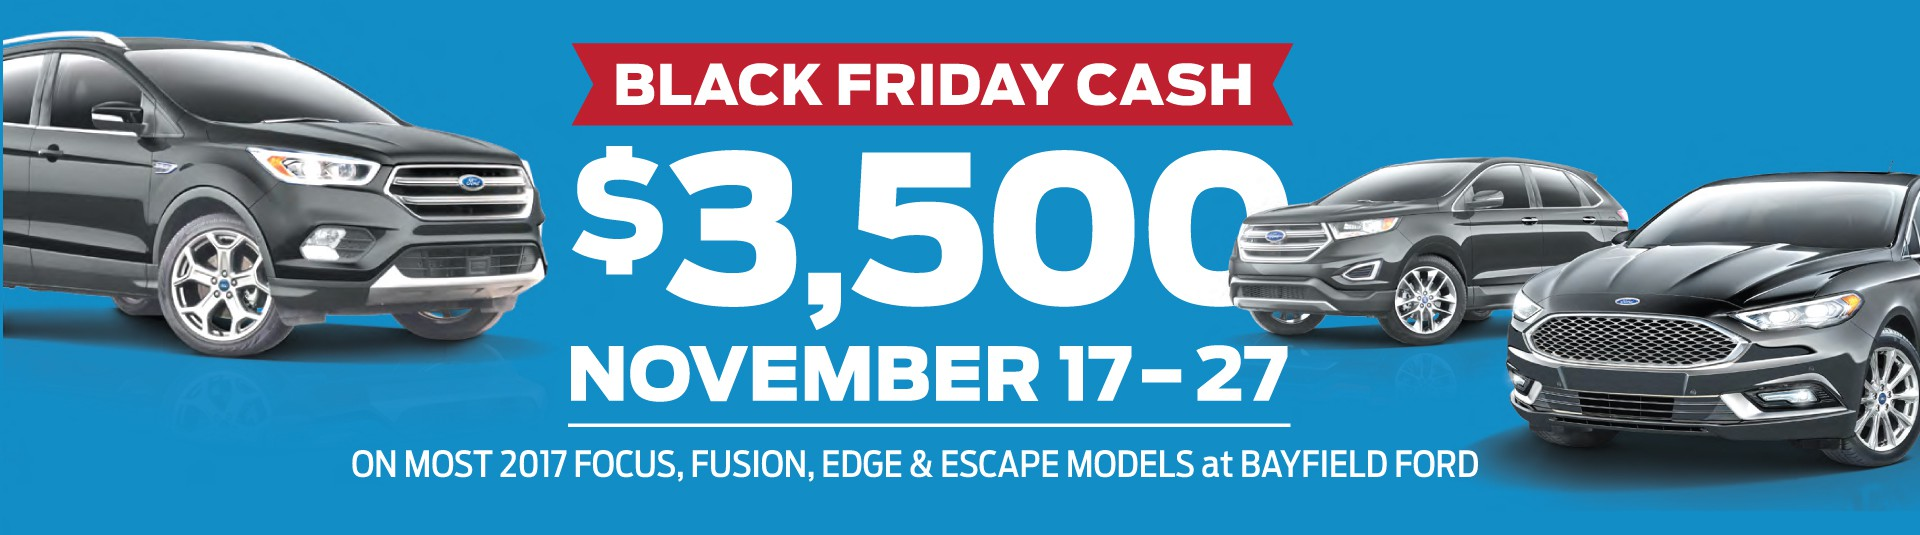 Black Friday Ford Sales